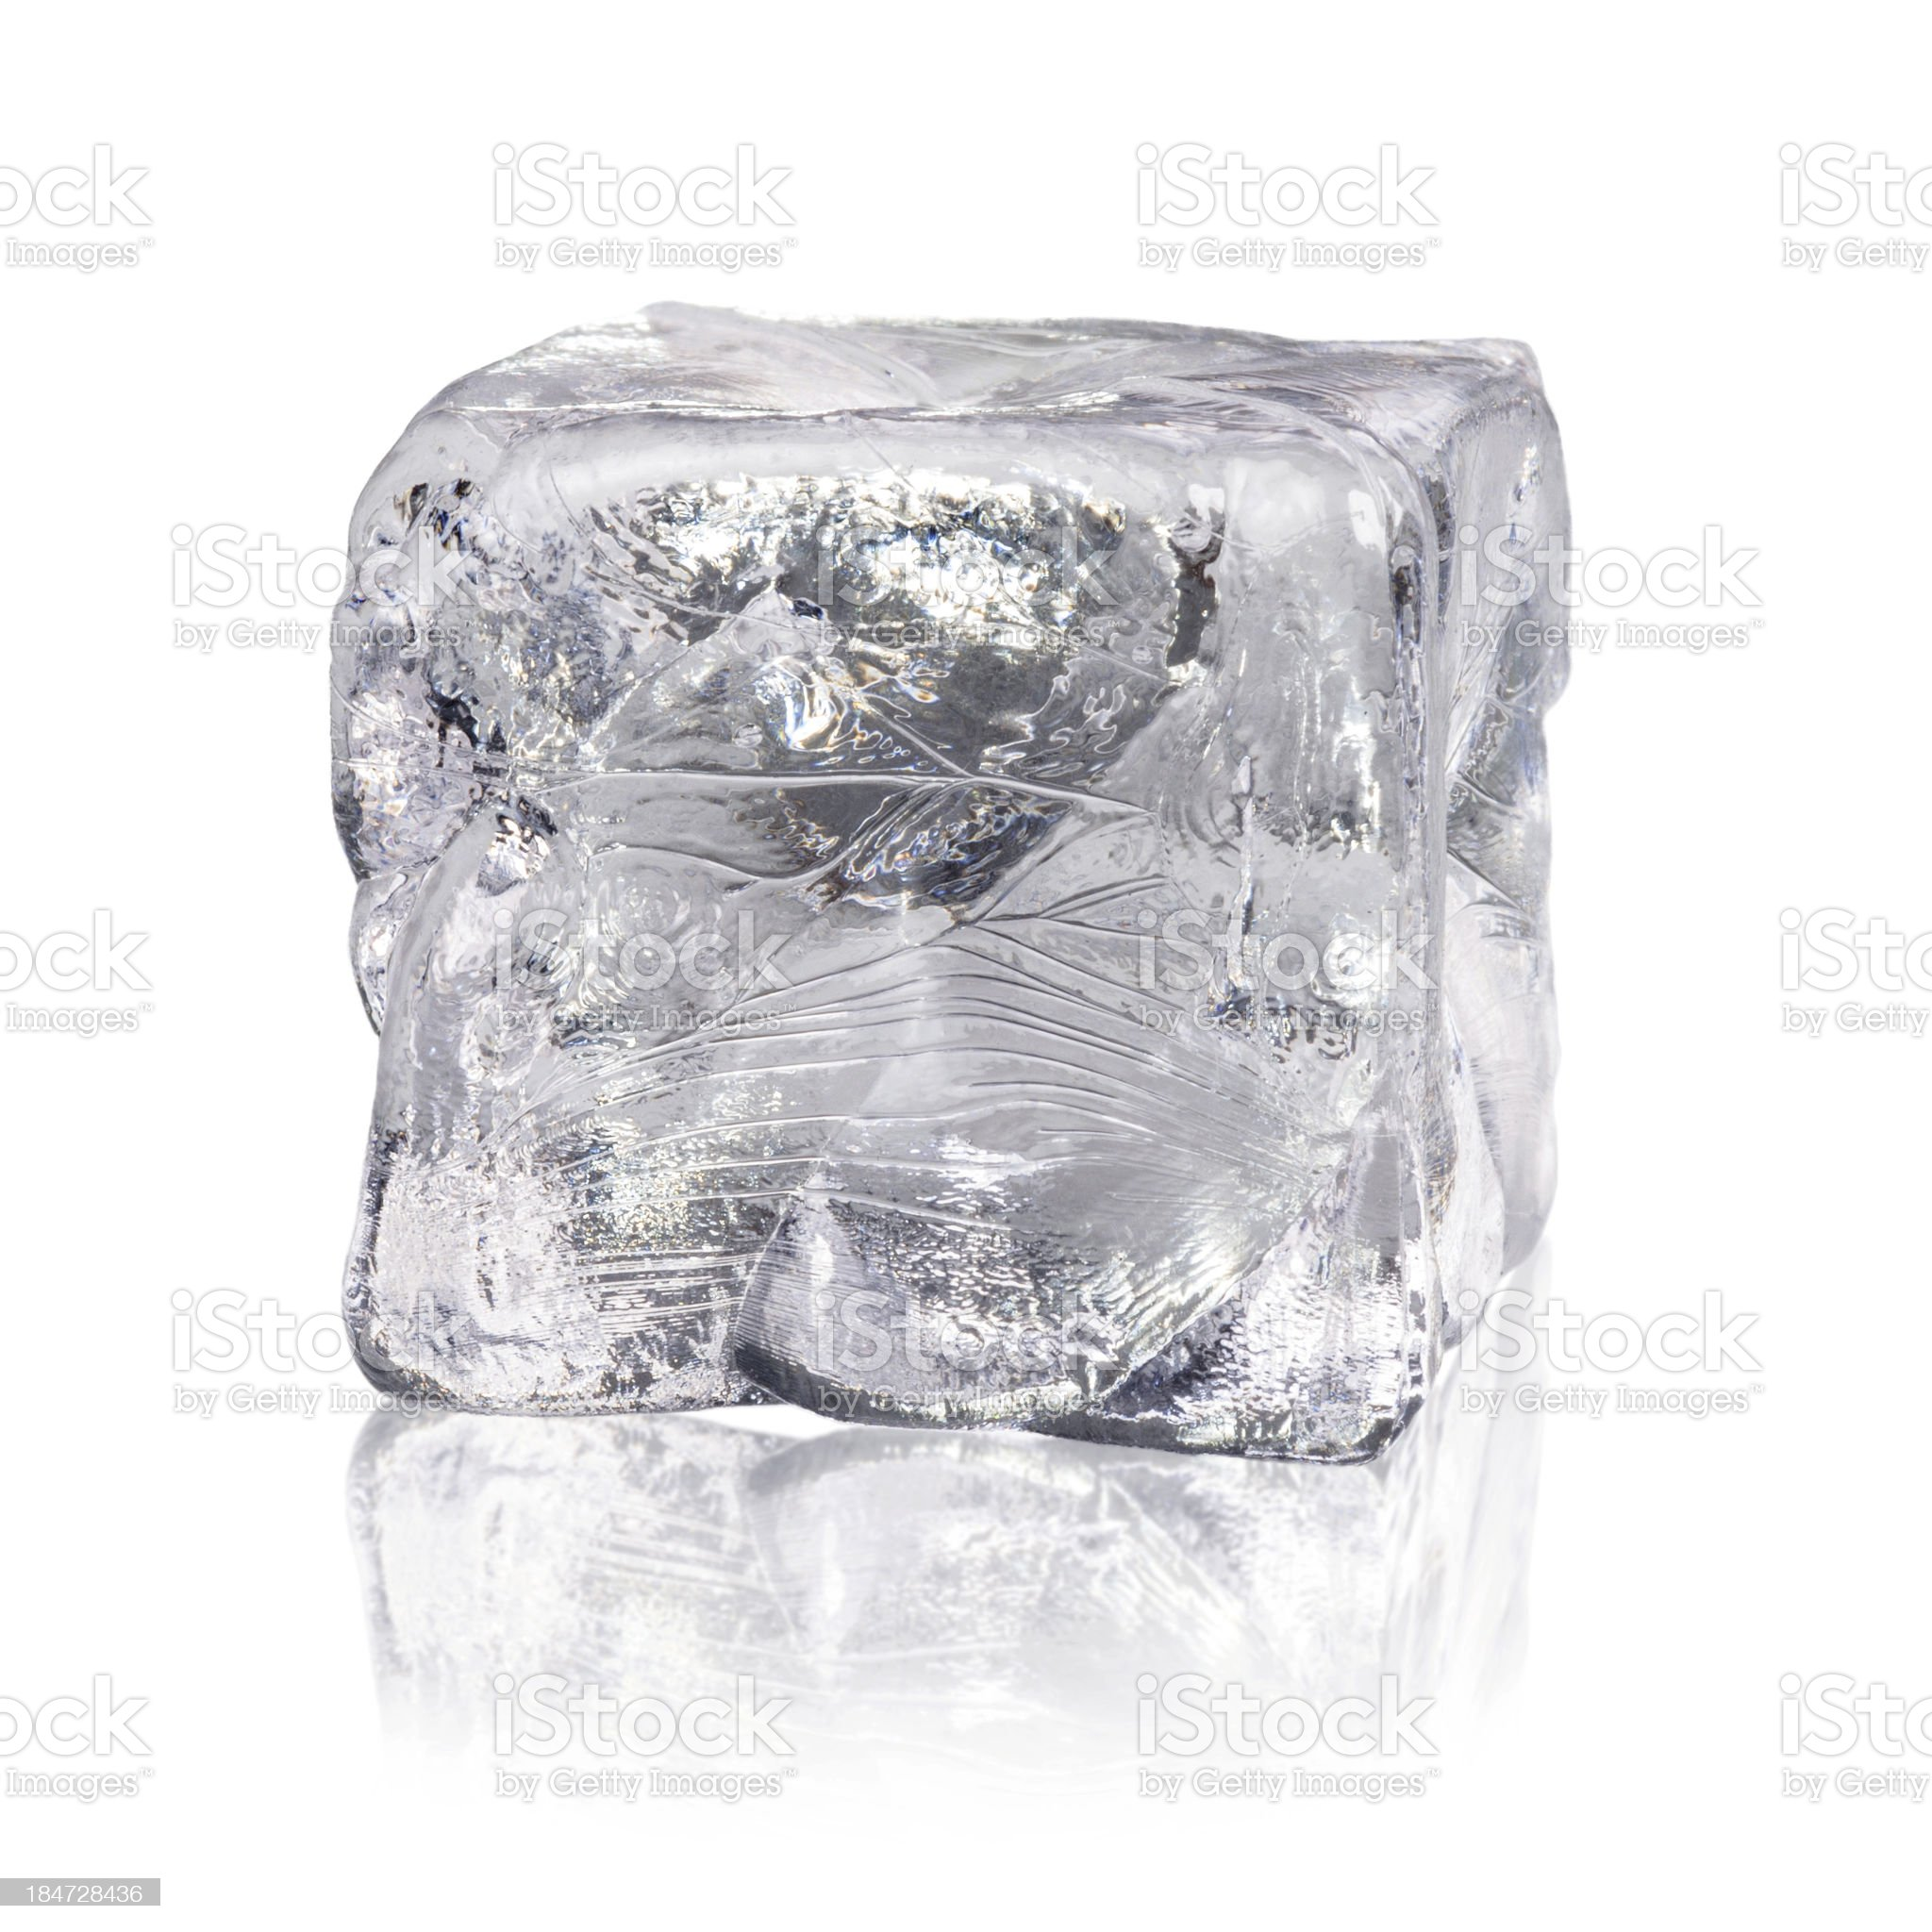 ice cube before white background royalty-free stock photo